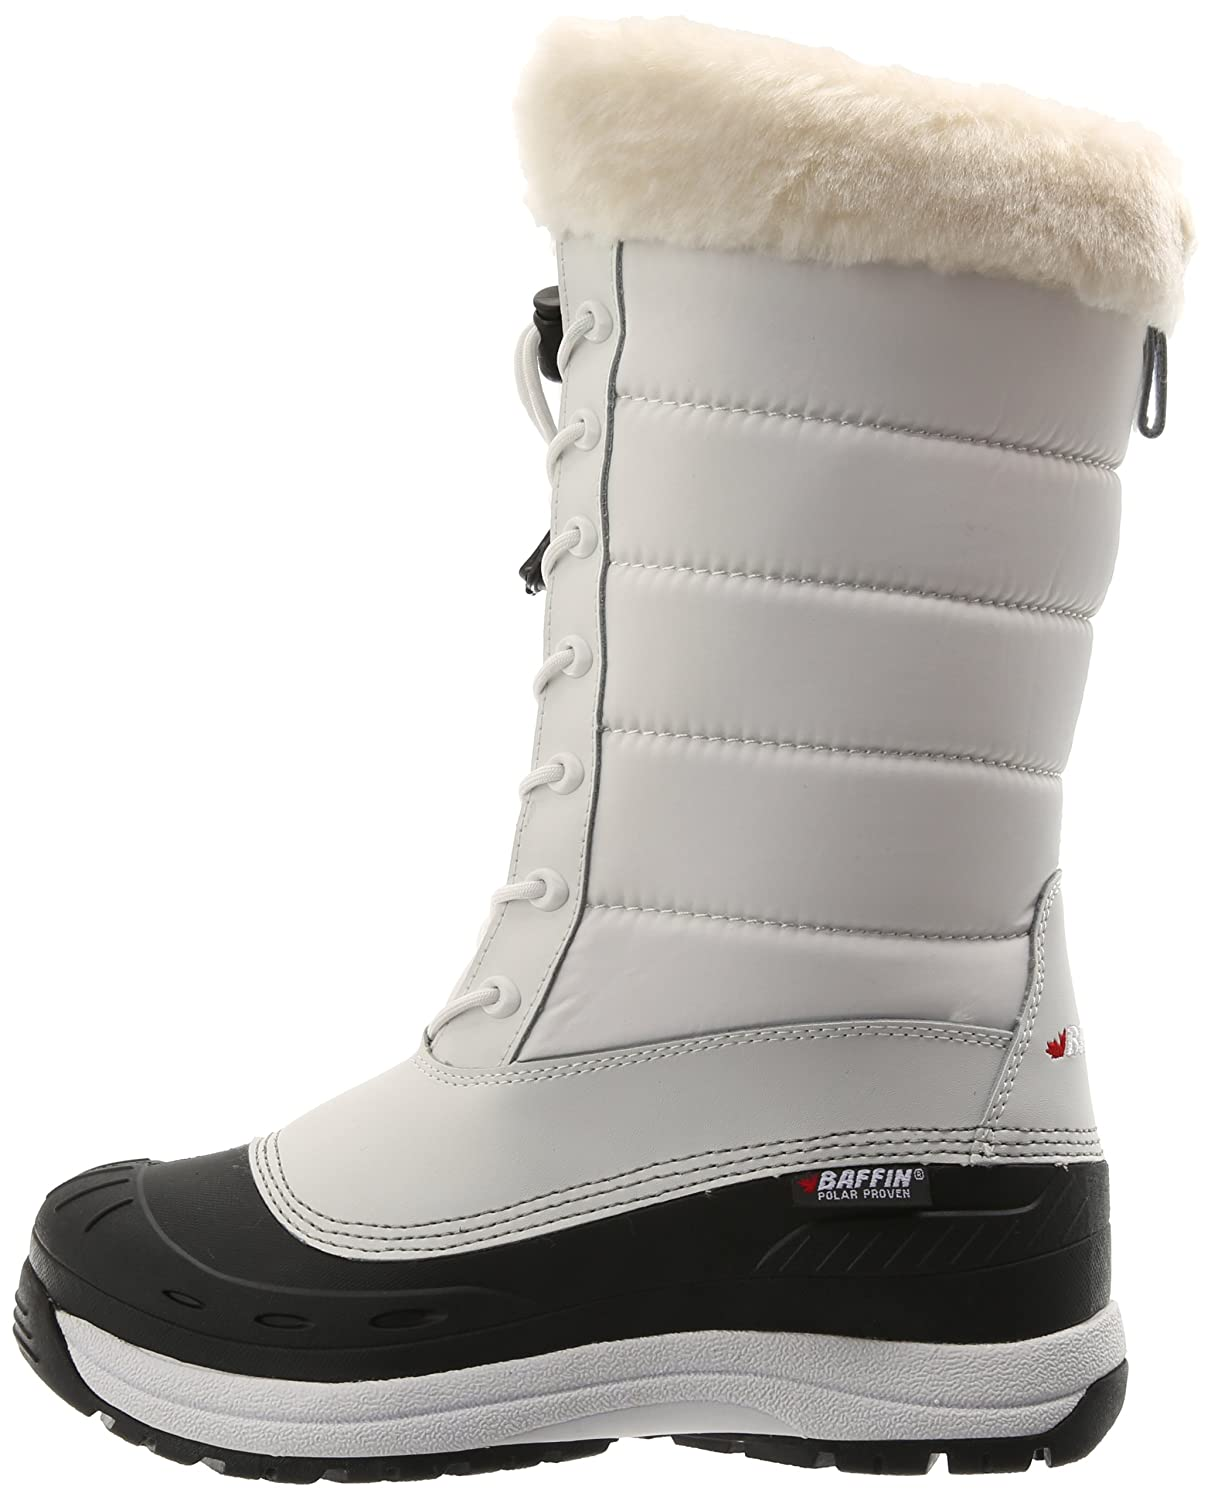 Baffin Women's Iceland Snow Boot US|White B004W5RX72 7 B(M) US|White Boot d95789